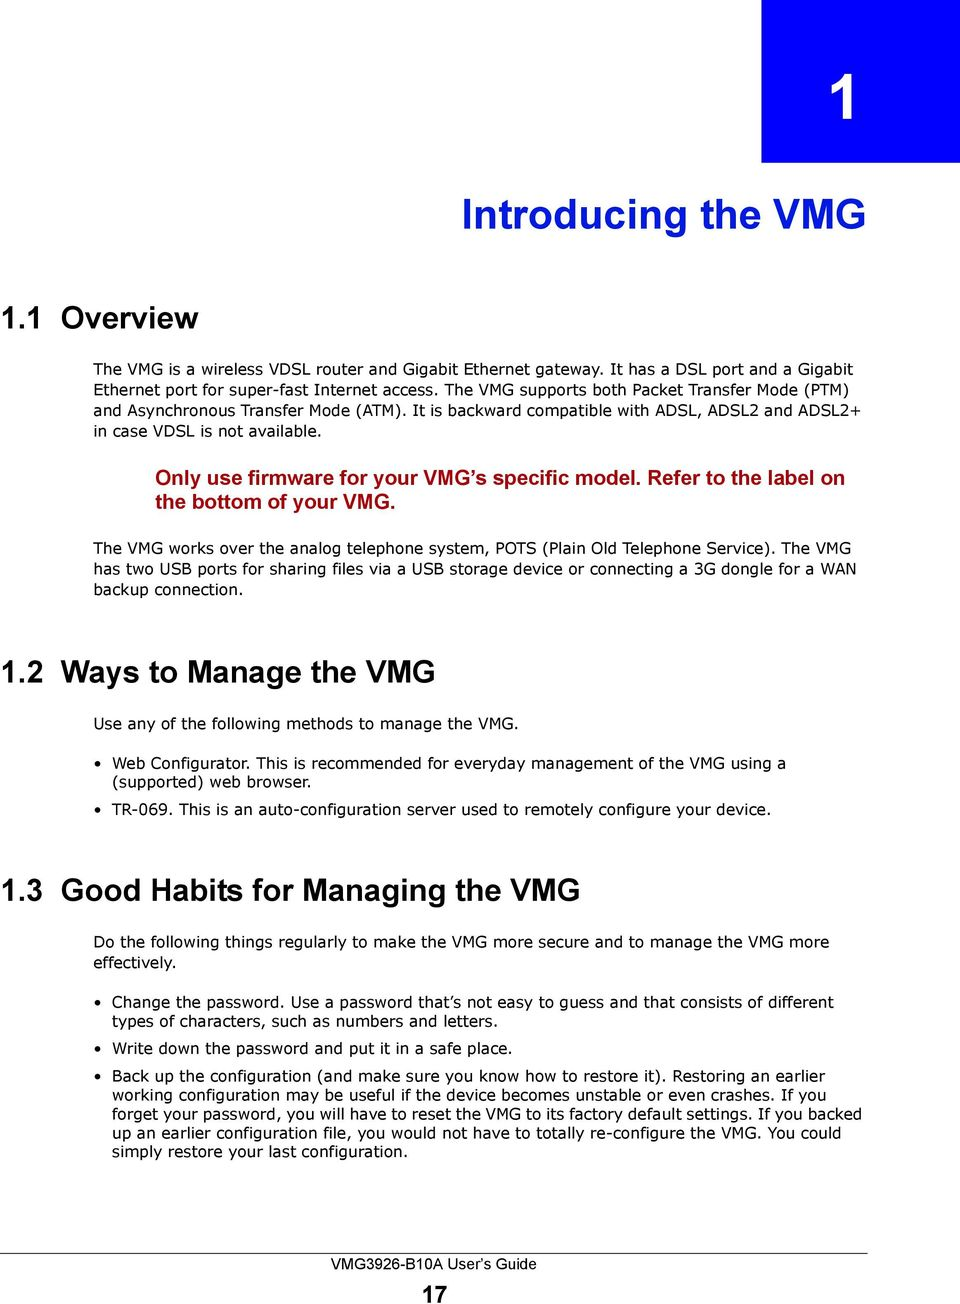 Only use firmware for your VMG s specific model. Refer to the label on the bottom of your VMG. The VMG works over the analog telephone system, POTS (Plain Old Telephone Service).